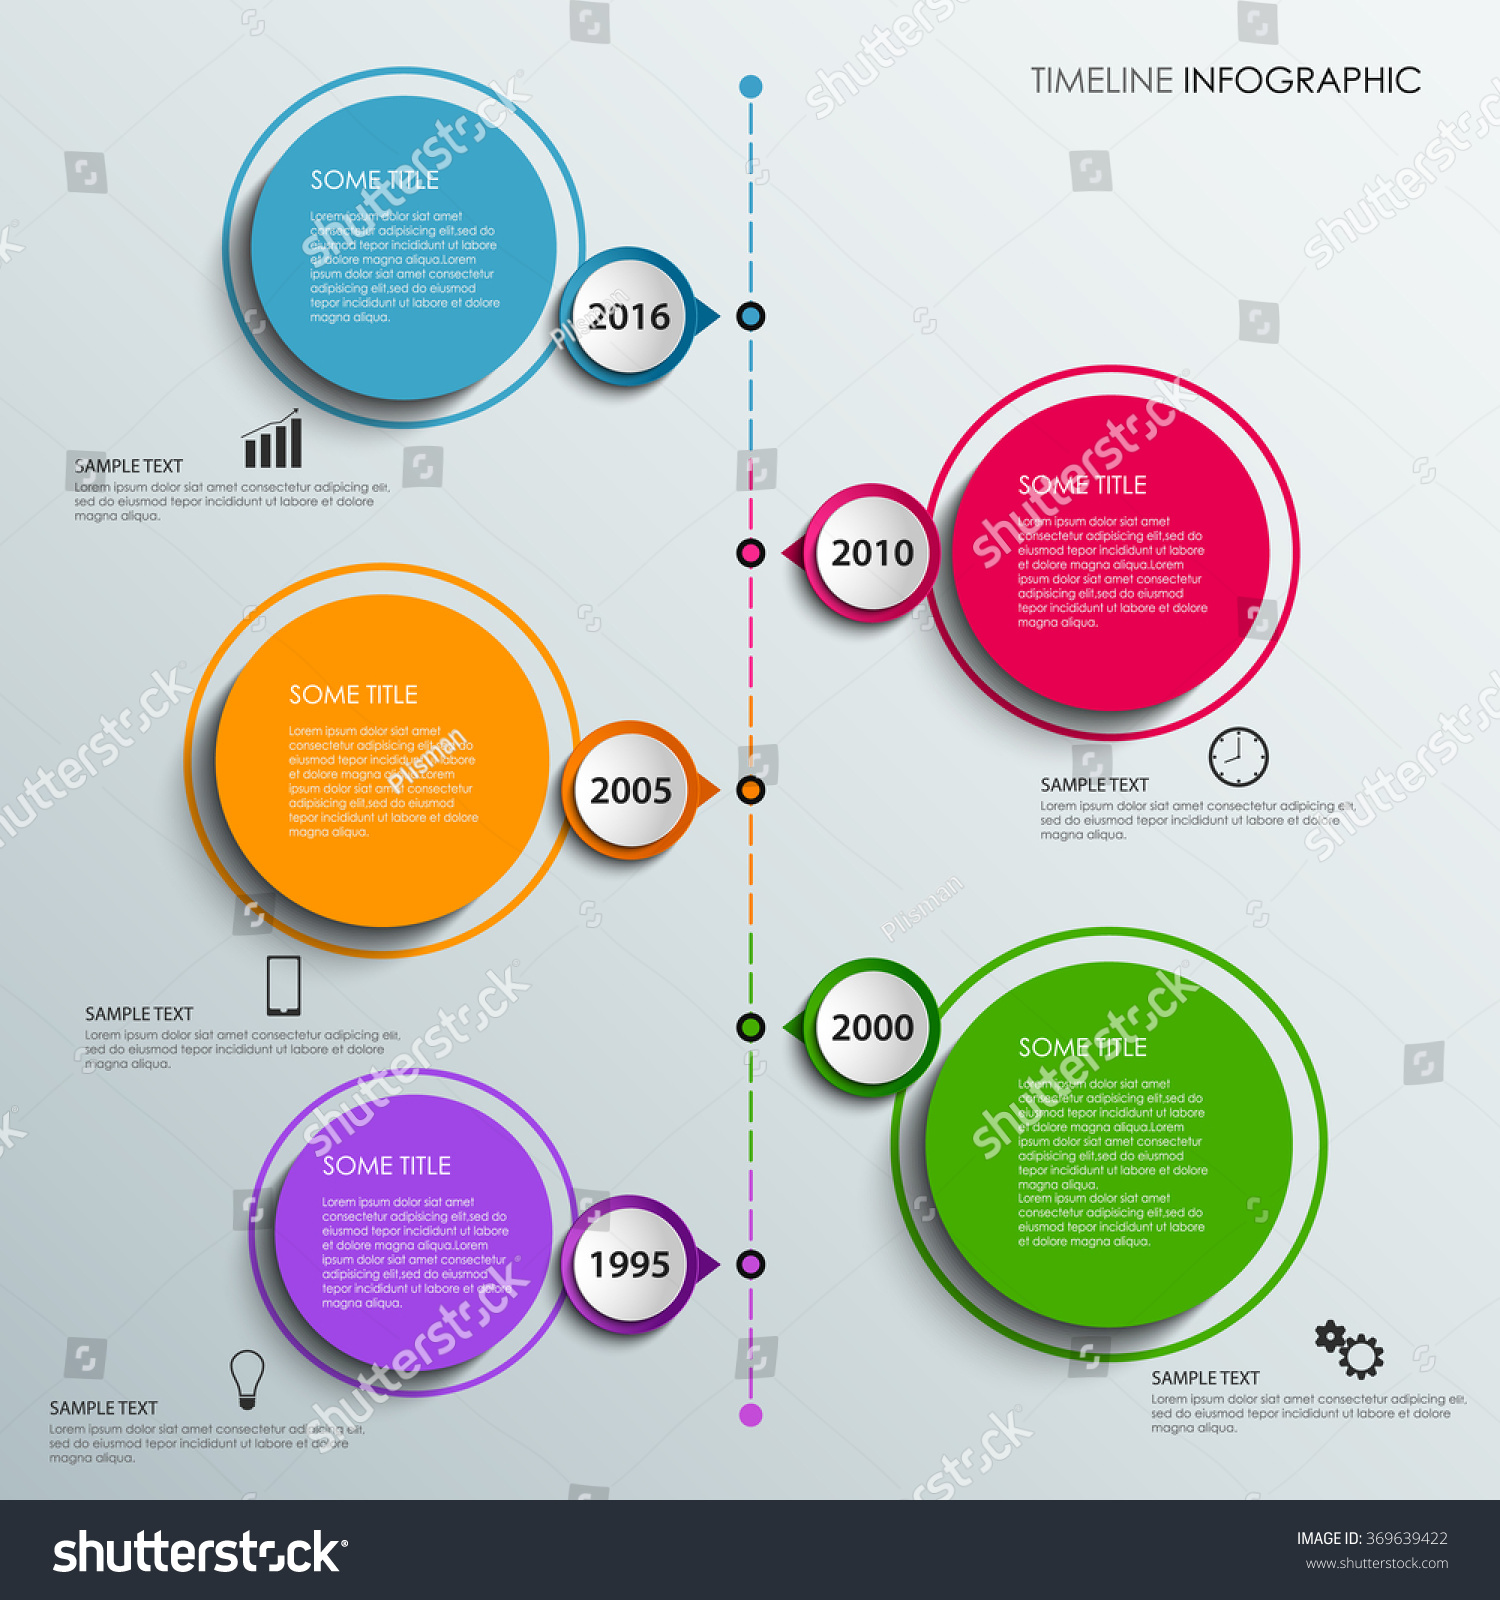 Graphic Design Elements Line : Time line info graphic colorful design stock vector